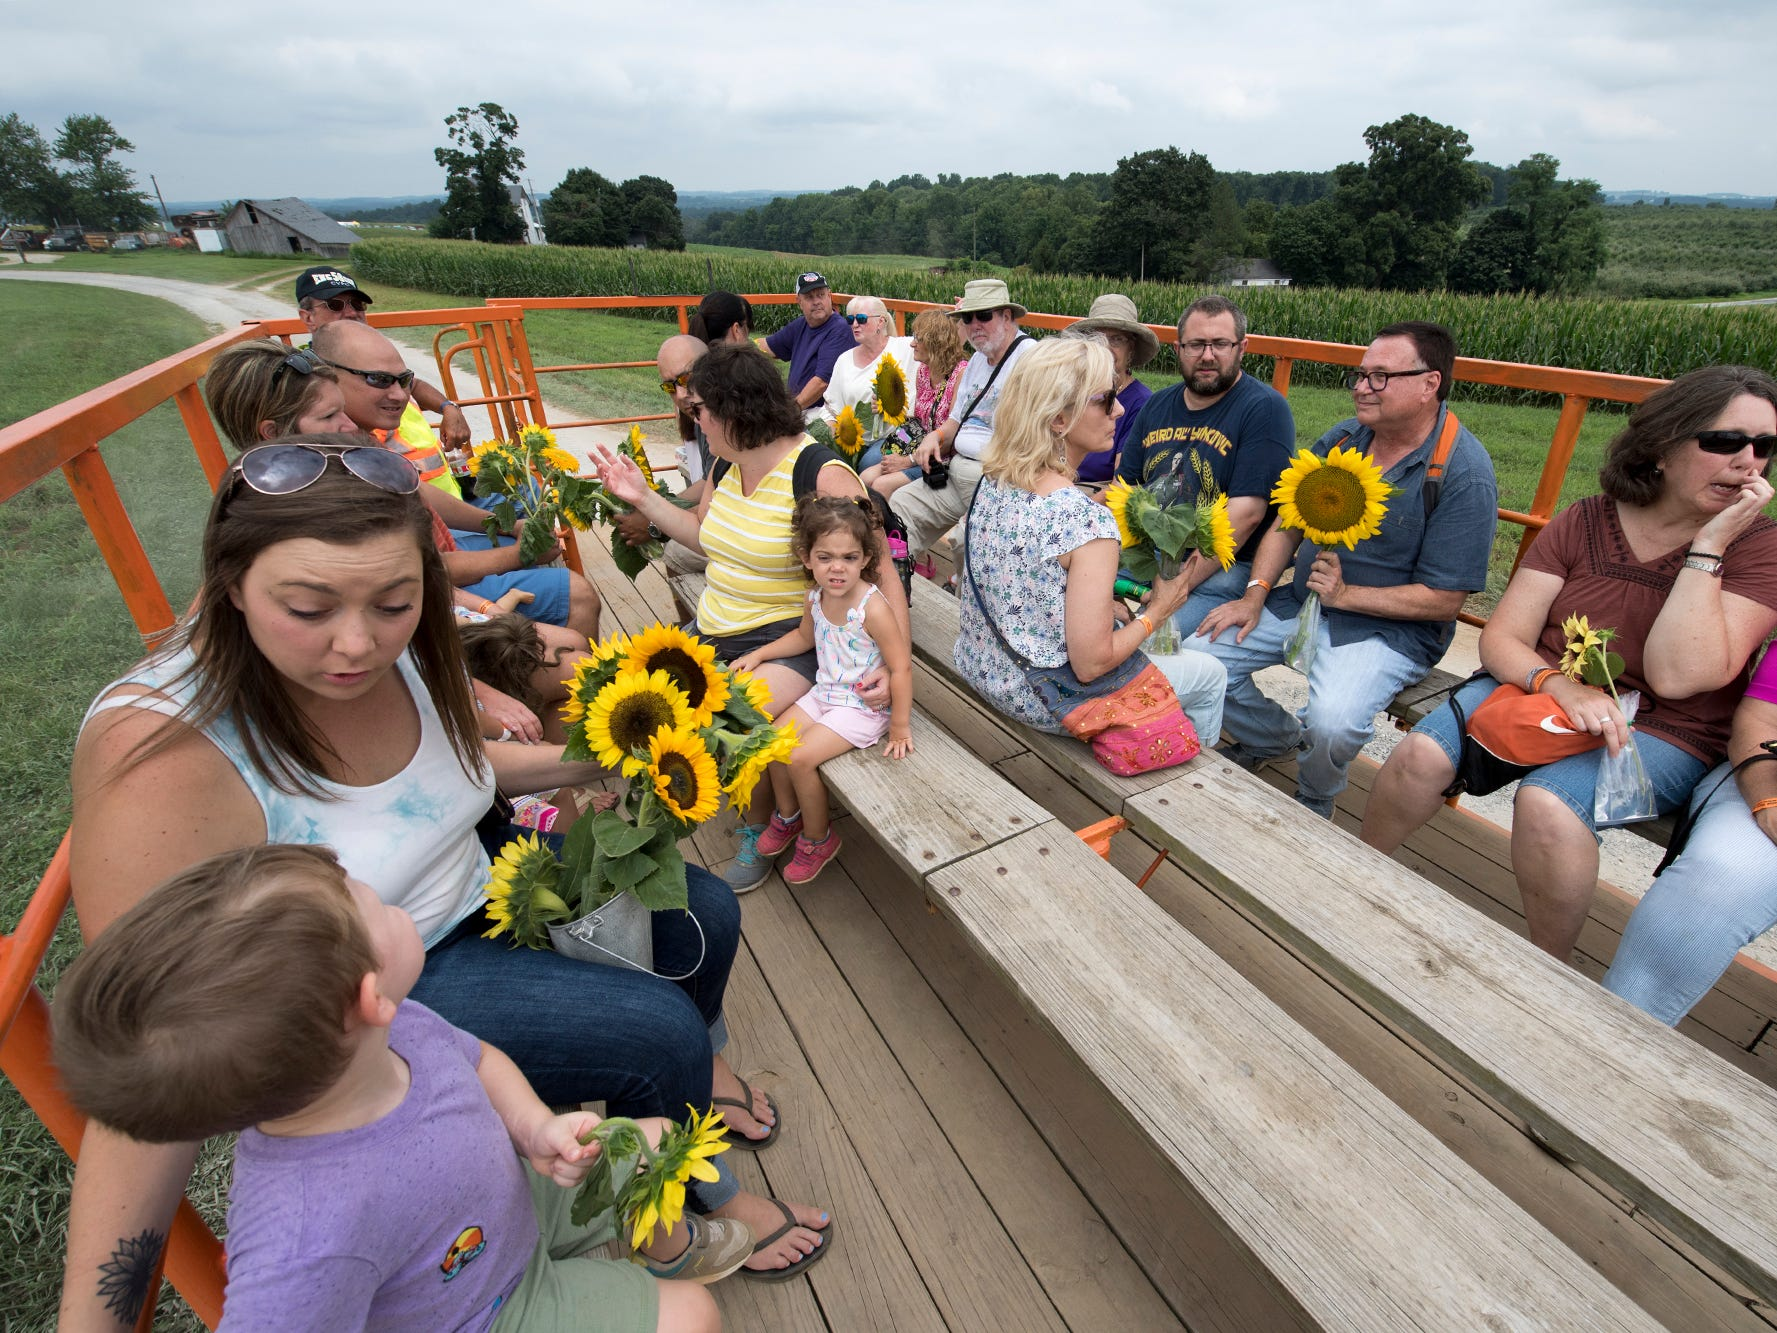 The wagon ride back to the car during the 2nd Annual Sunflower Festival at Maple Lawn Farms near New Park.